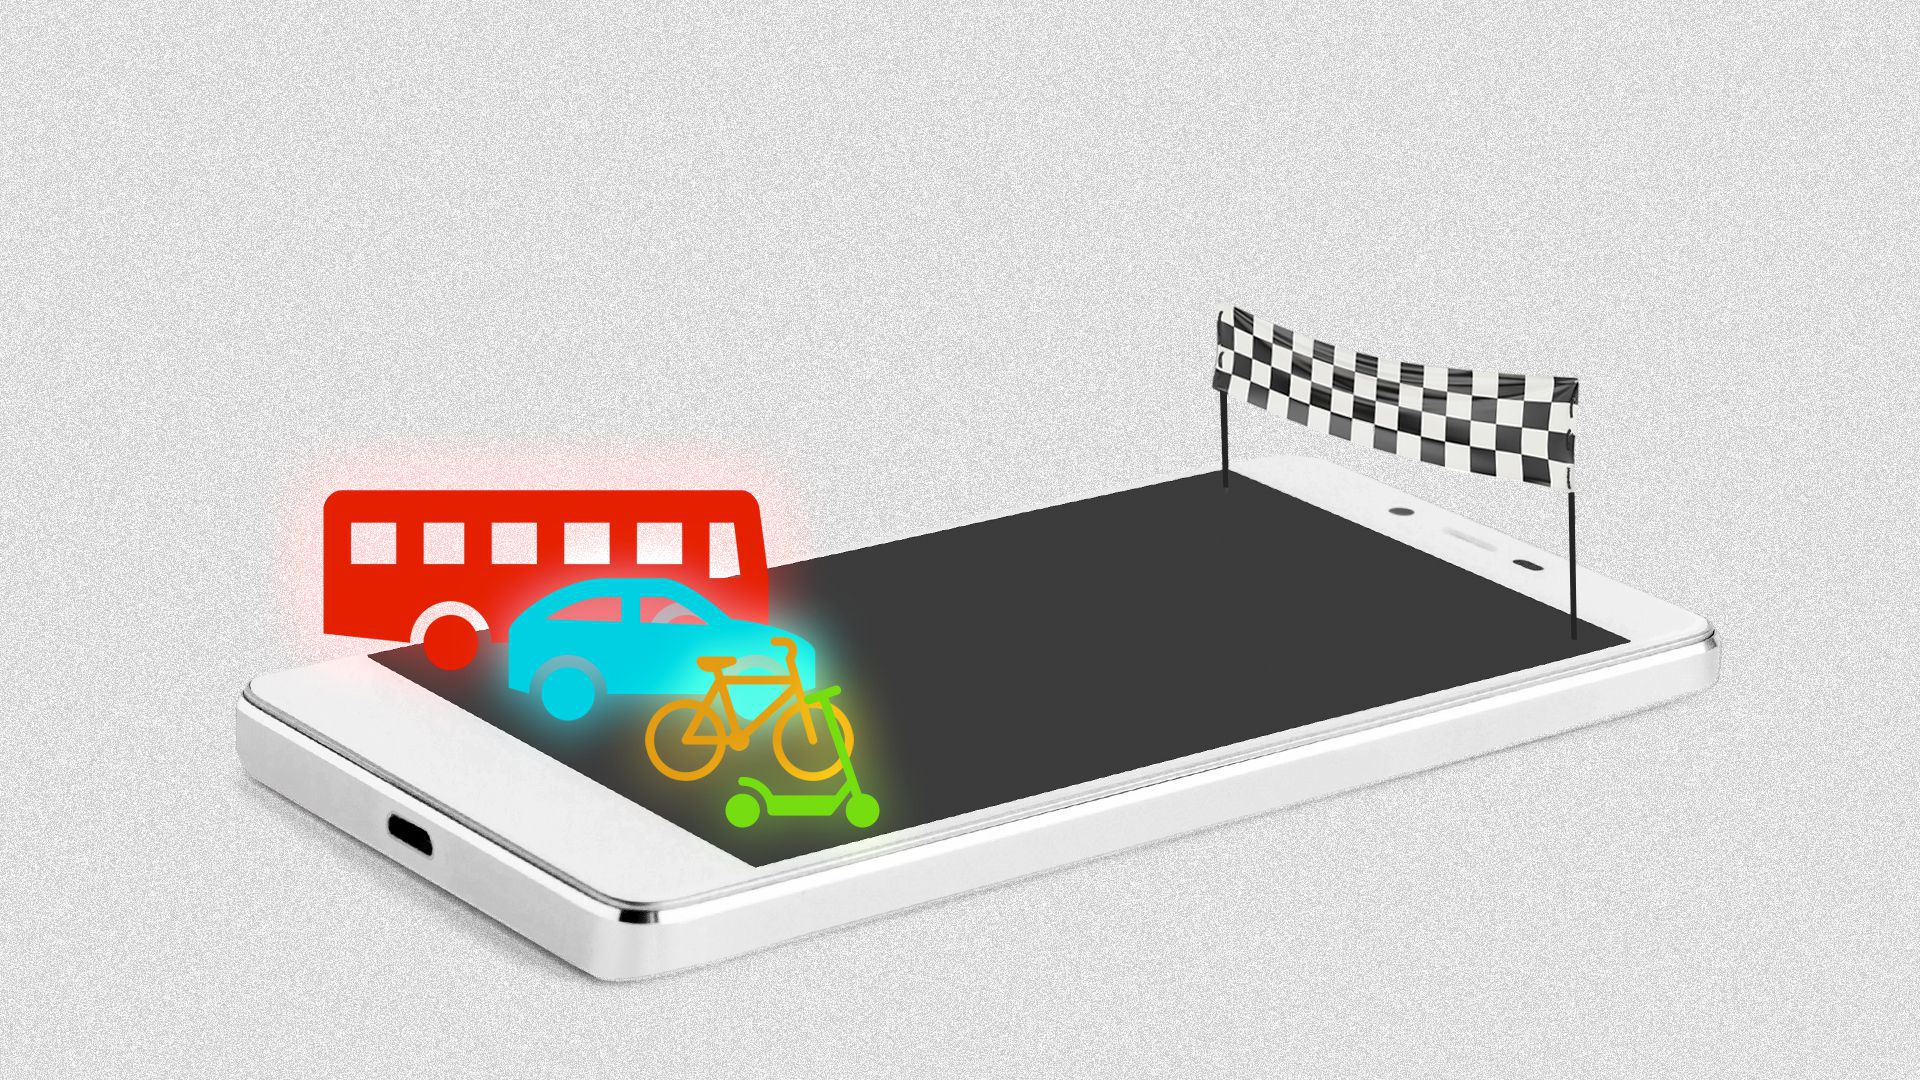 An illustration of various forms of transportation racing across a smartphone.